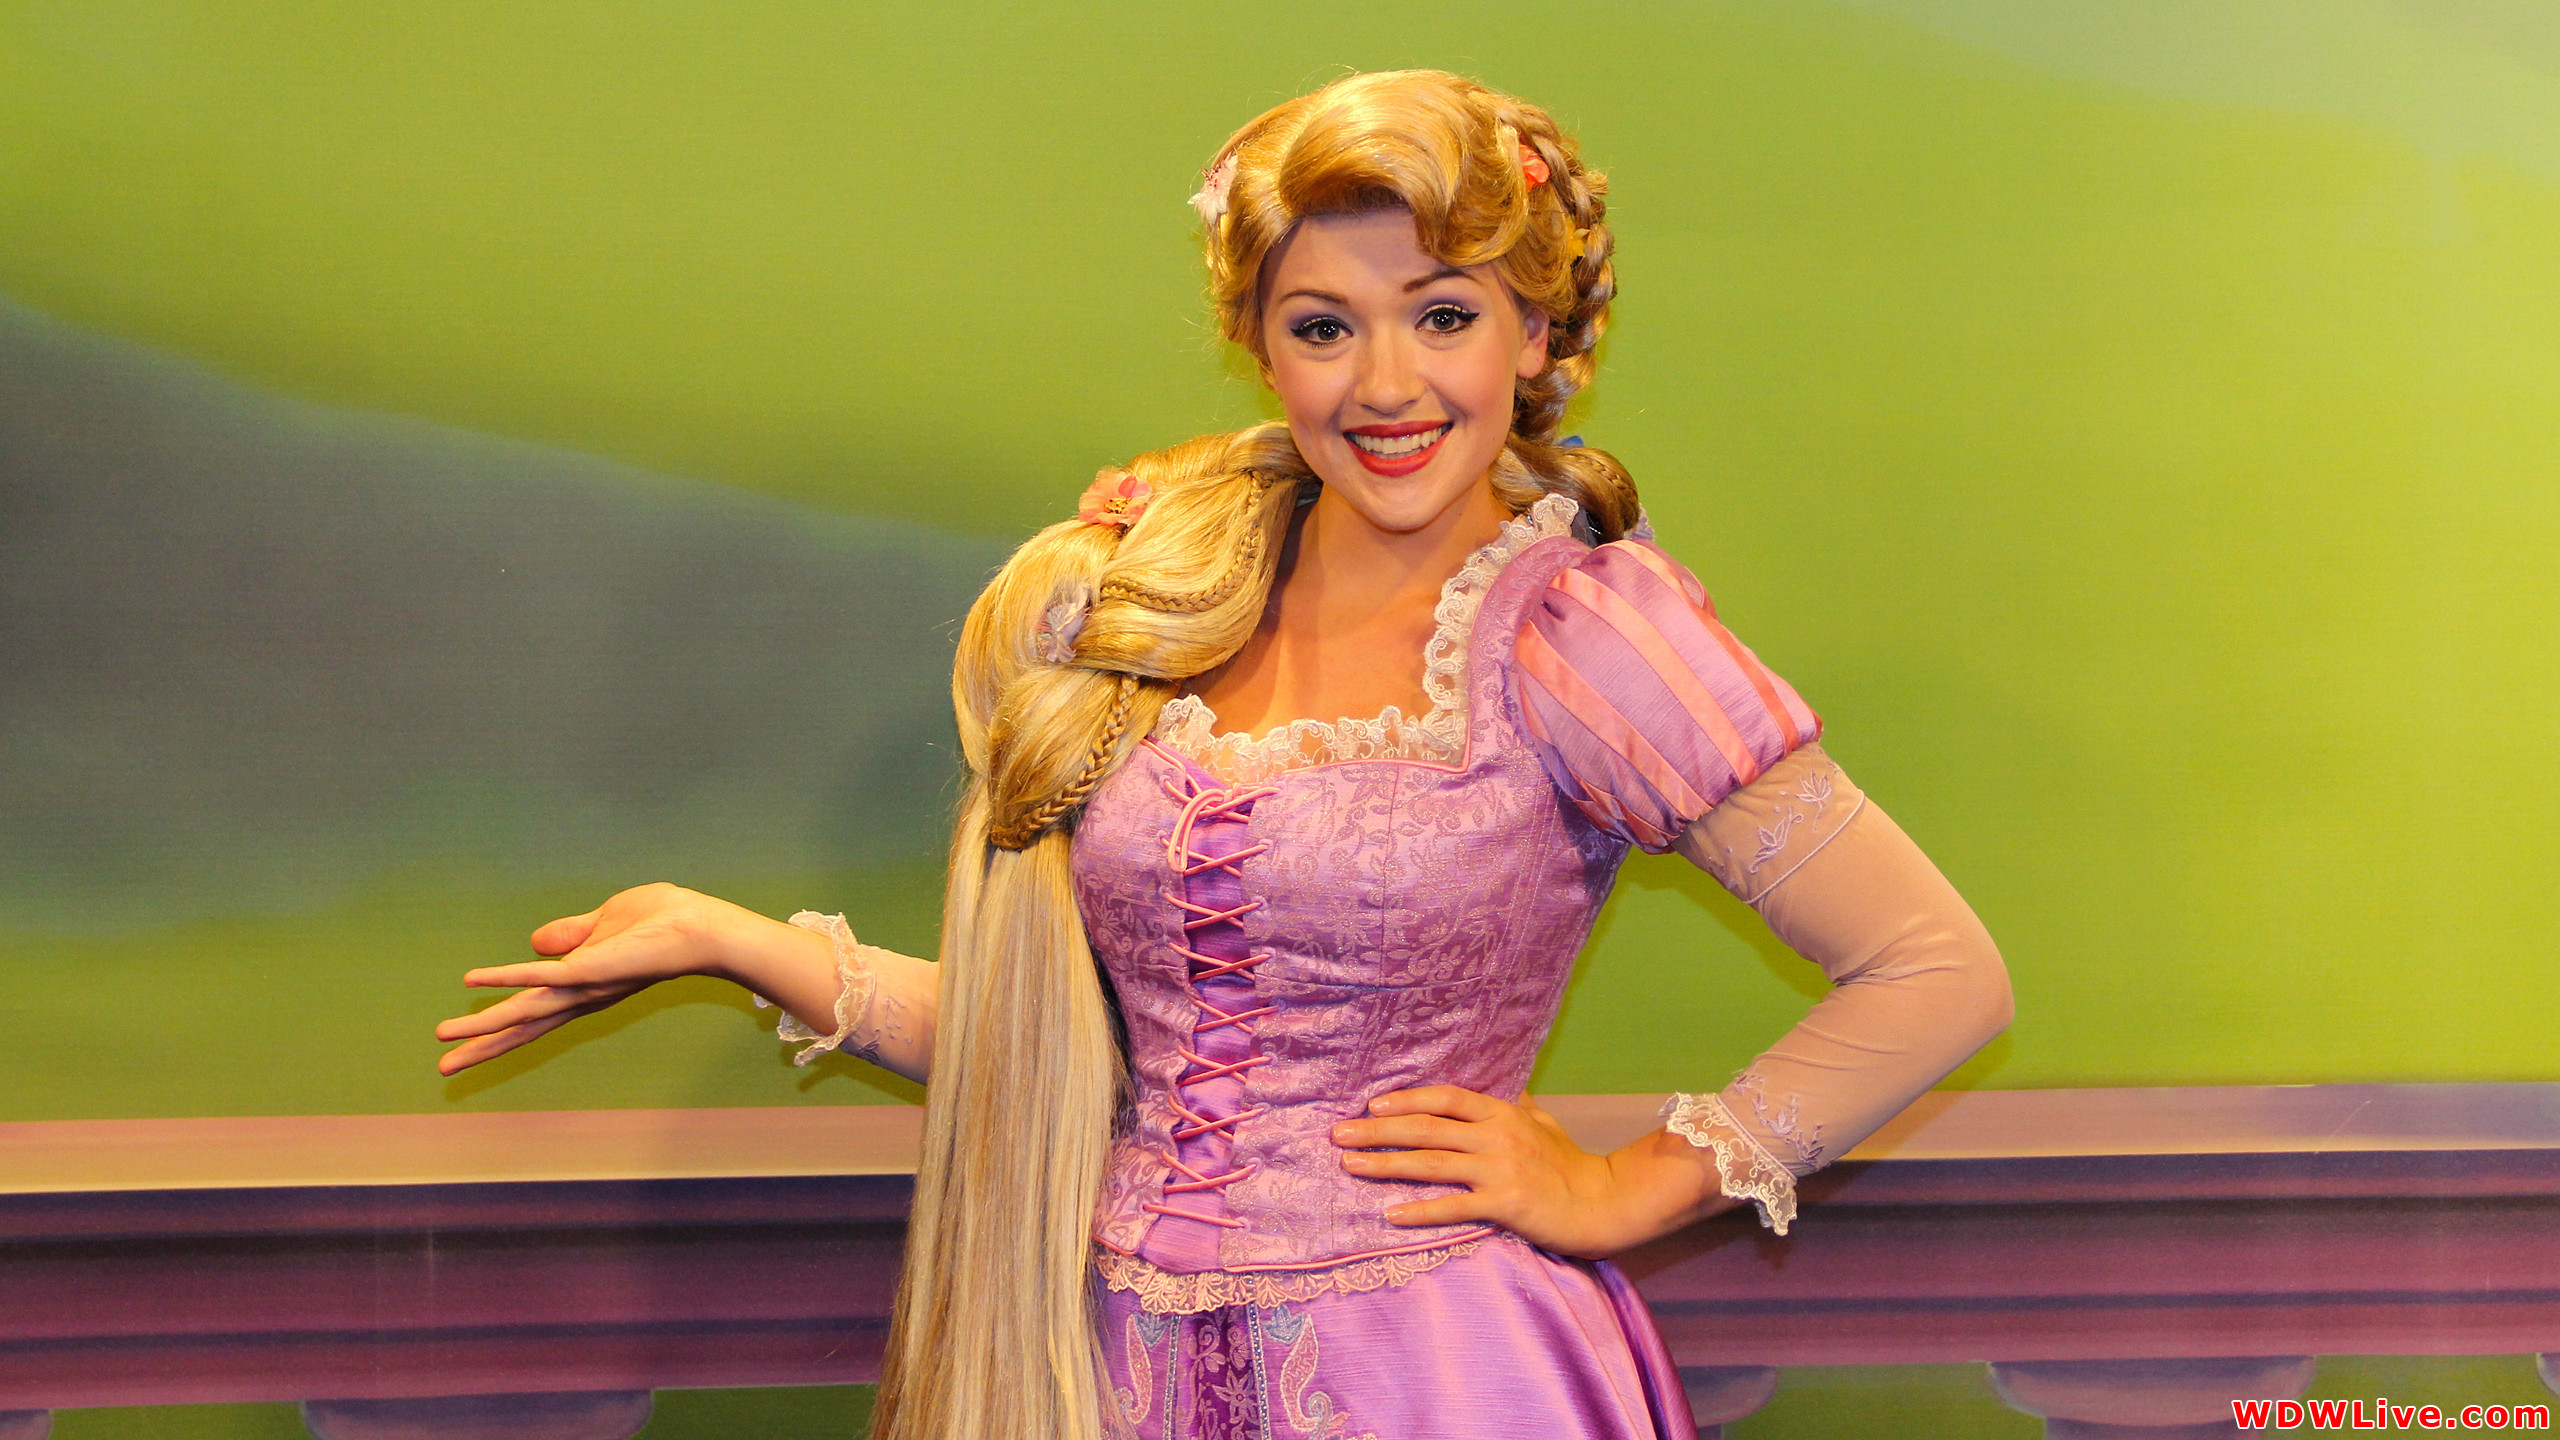 Rapunzel: Rapunzel from the Disney animated film Tangled!